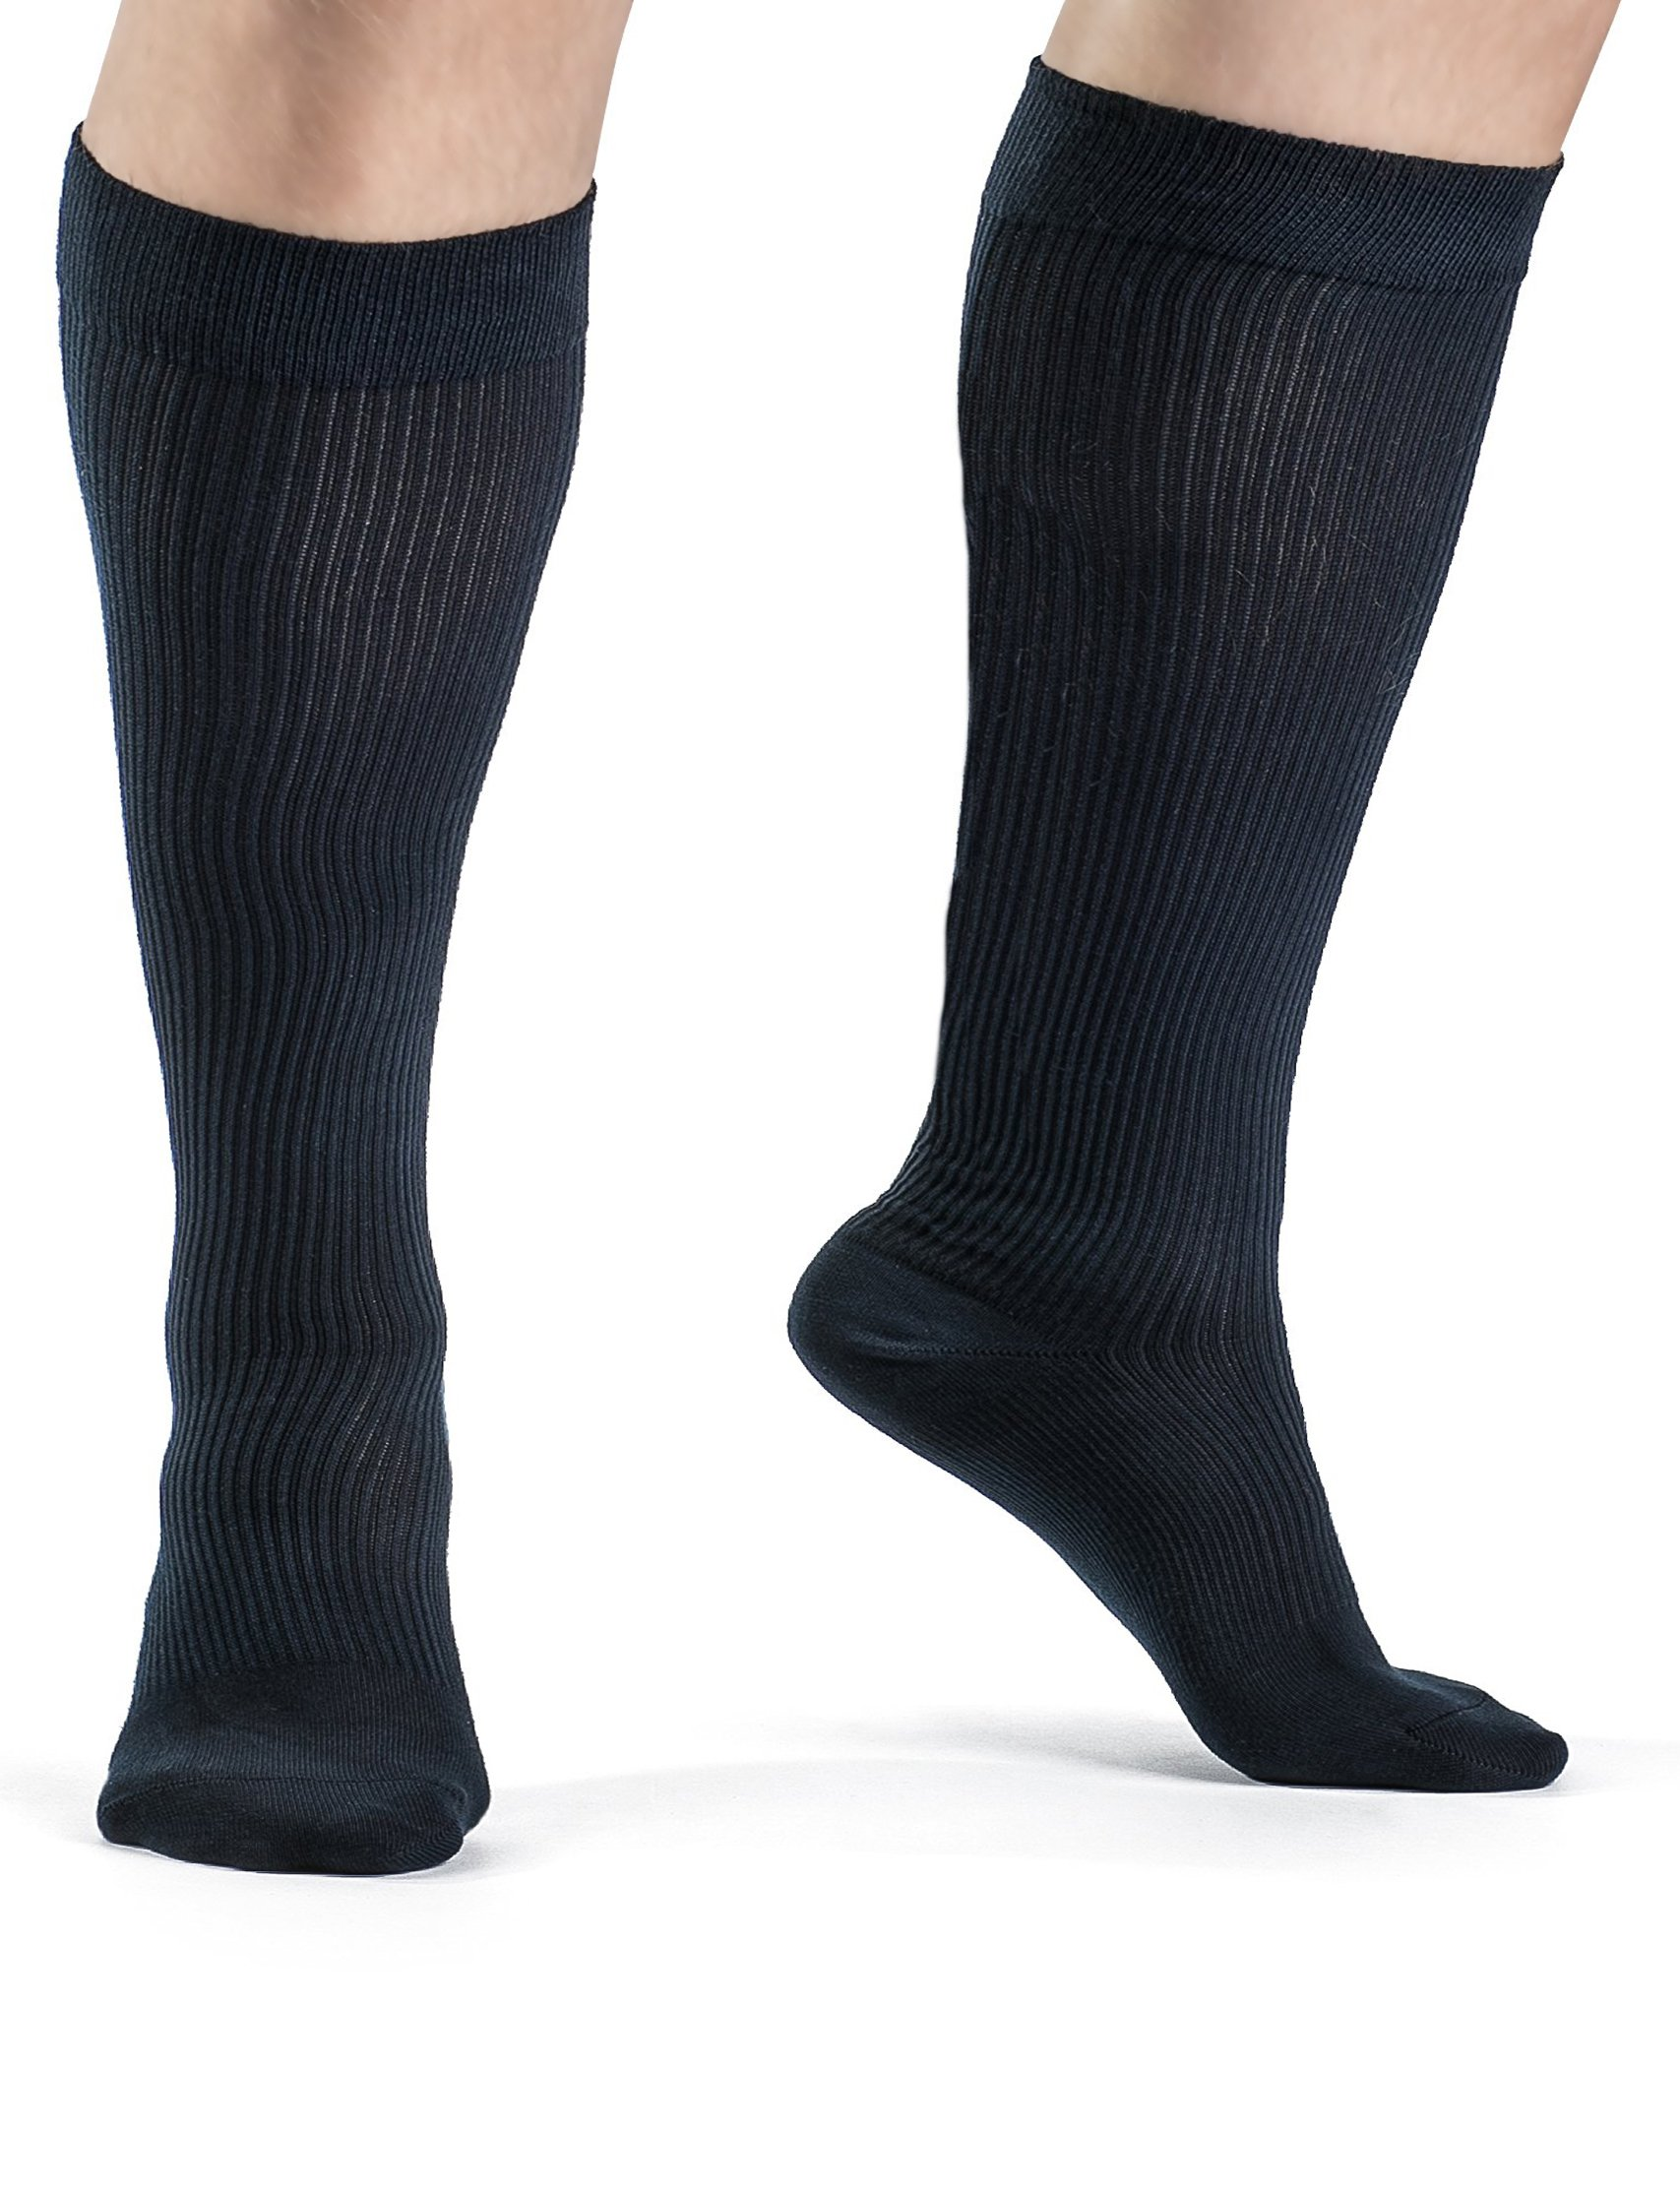 Medical Grade Plus Size Wide Calf and Ankle Gradient Compression 20-30 mmHg Unisex Organic Cotton Compression Socks,Premium Hosiery for Maternity, Travel, Athletes, Sports, Diabetics. (XL) by Terramed